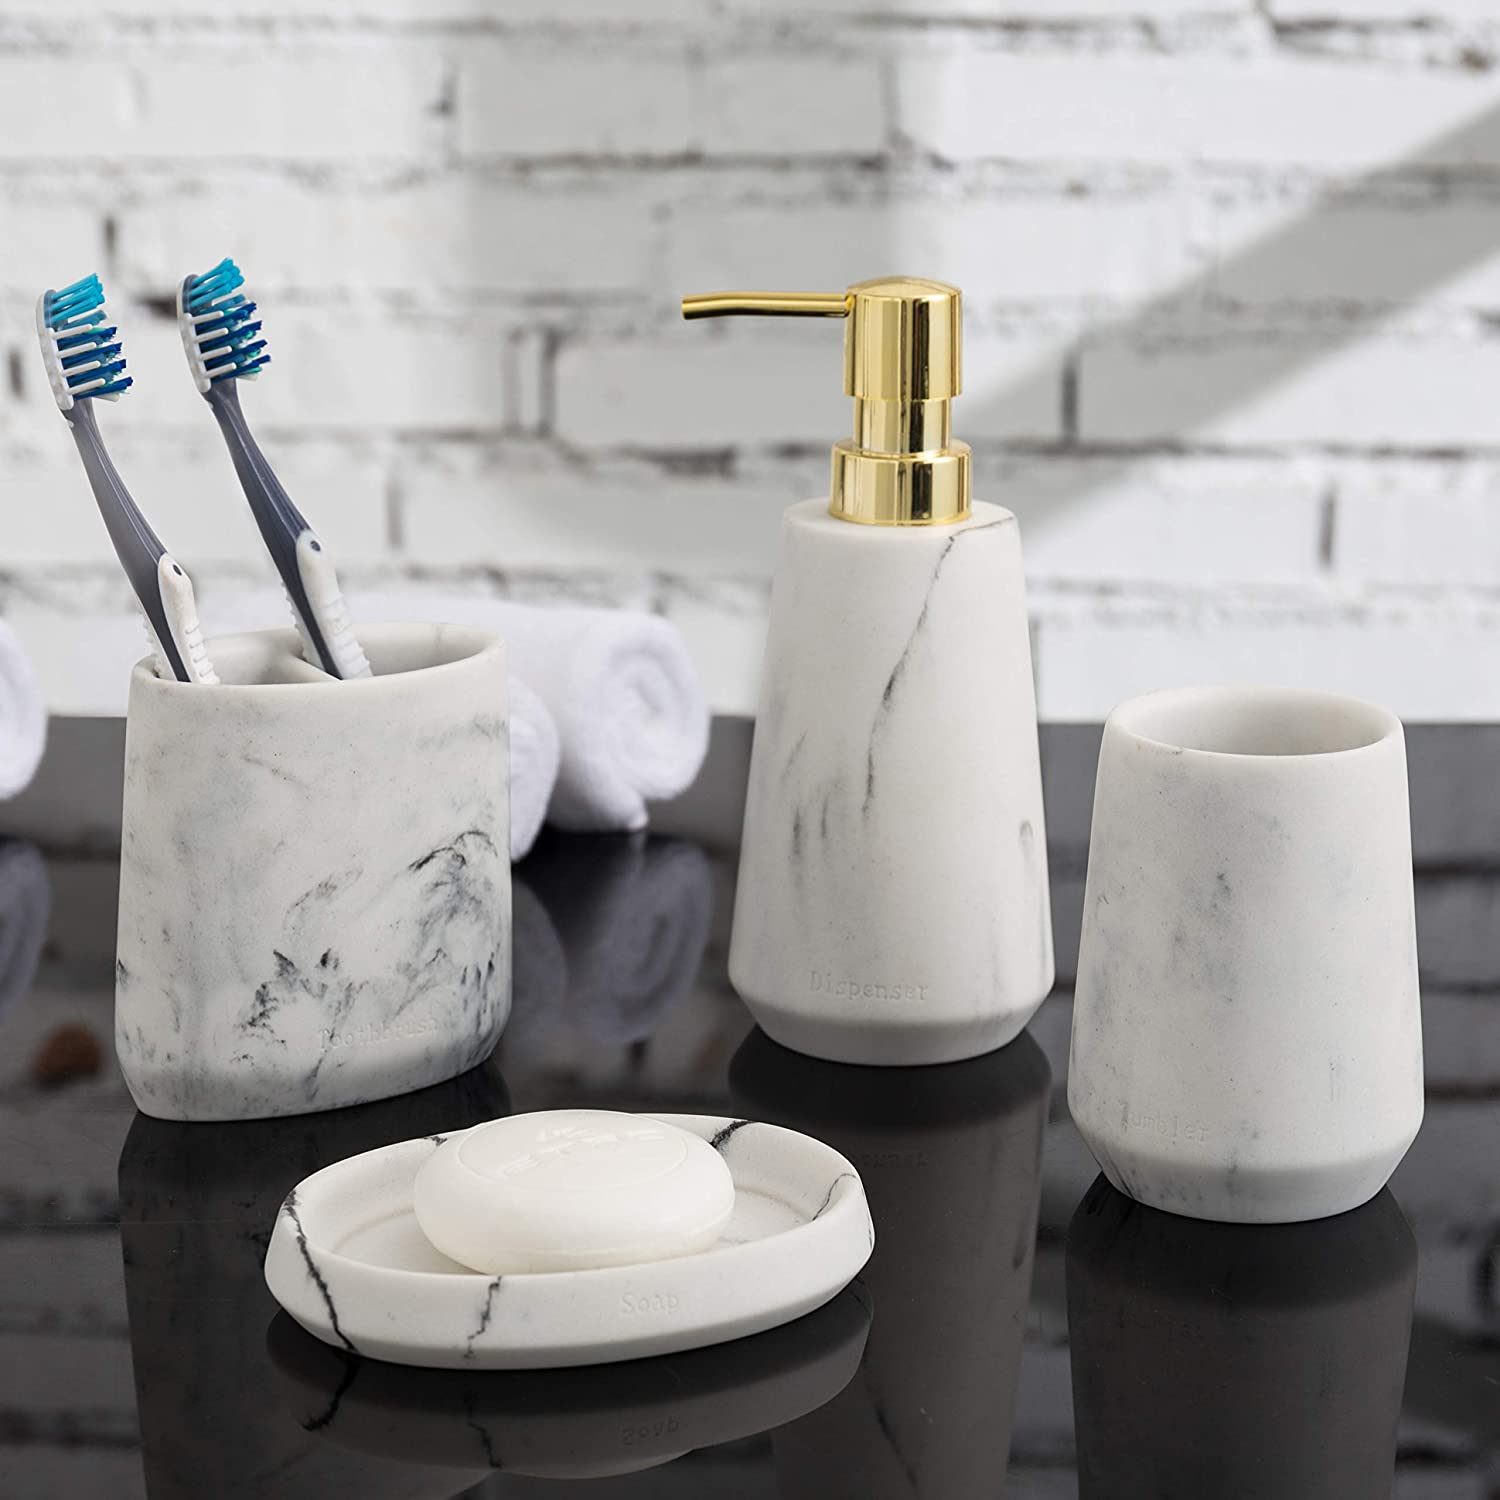 MyGift 9-Piece Modern White Marble & Brass Tone Bathroom Accessory Set with  Soap Dish, Dispenser, Toothbrush Holder and Tumbler